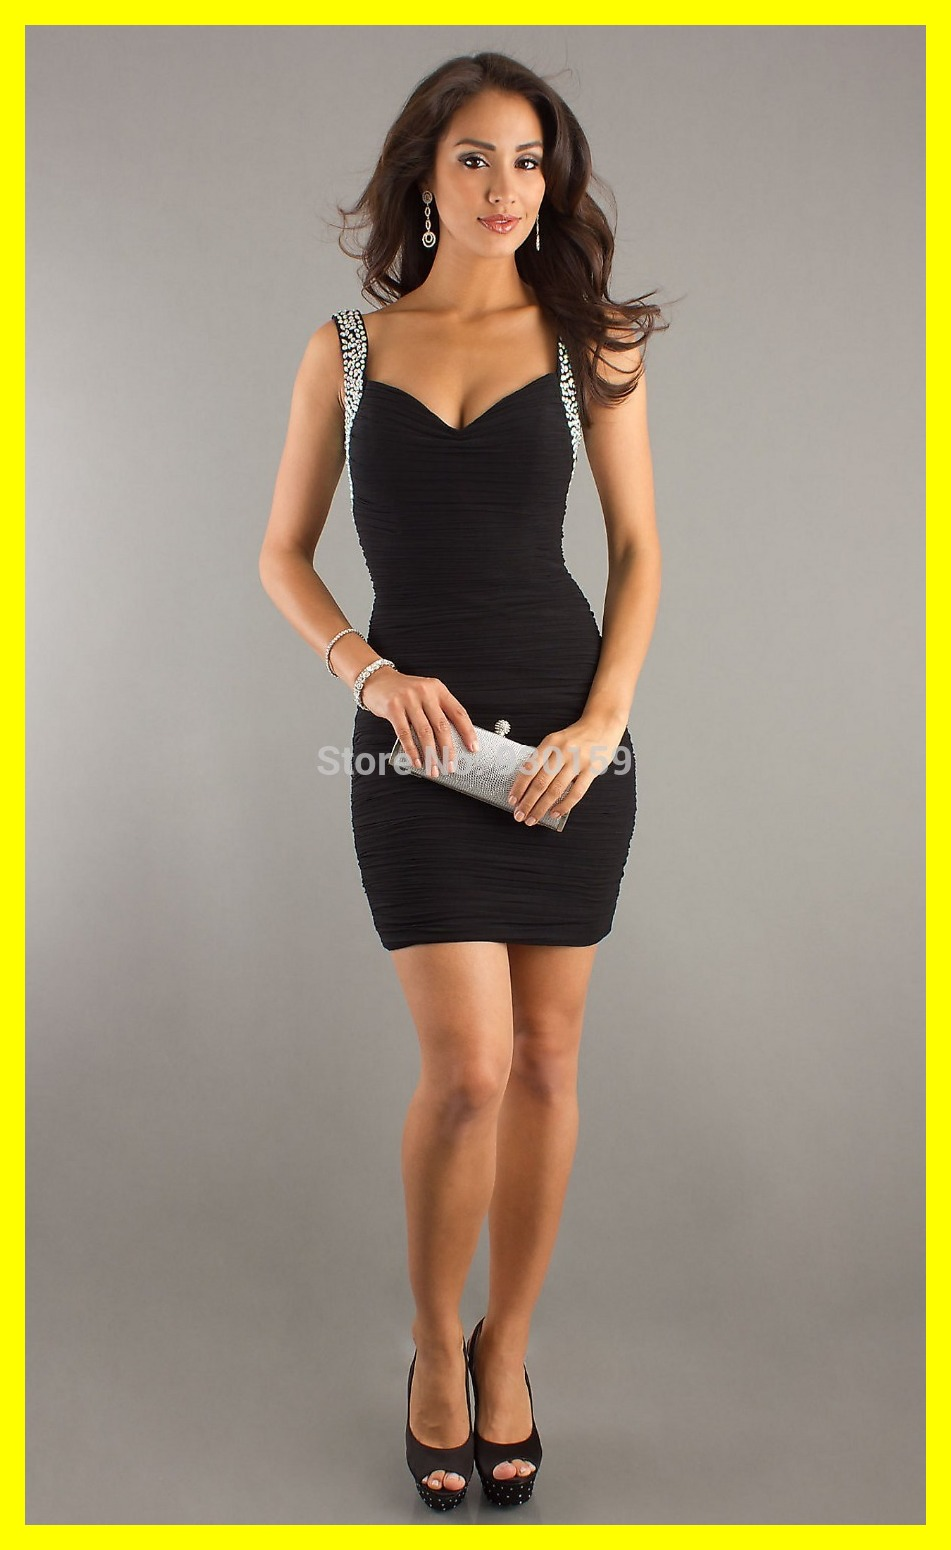 Aliexpress.com : Buy Cheap Homecoming Dress Design Your Own Short ...